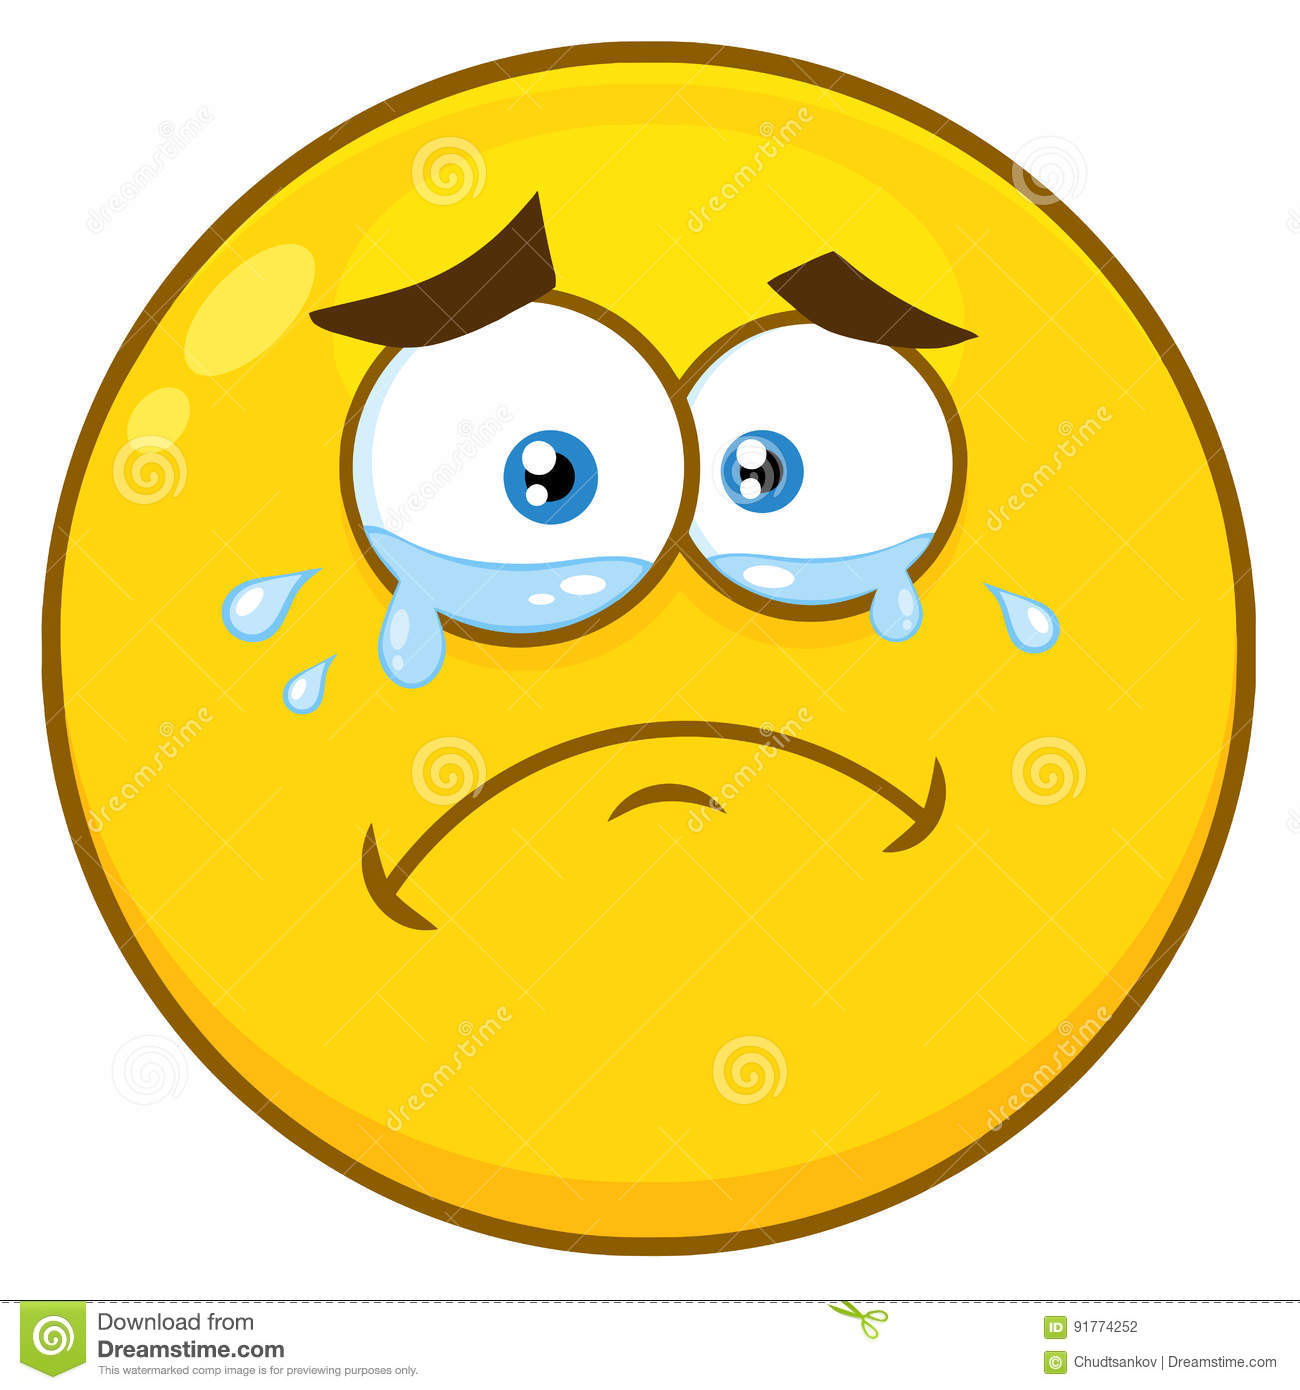 crying yellow cartoon smiley face character with tears